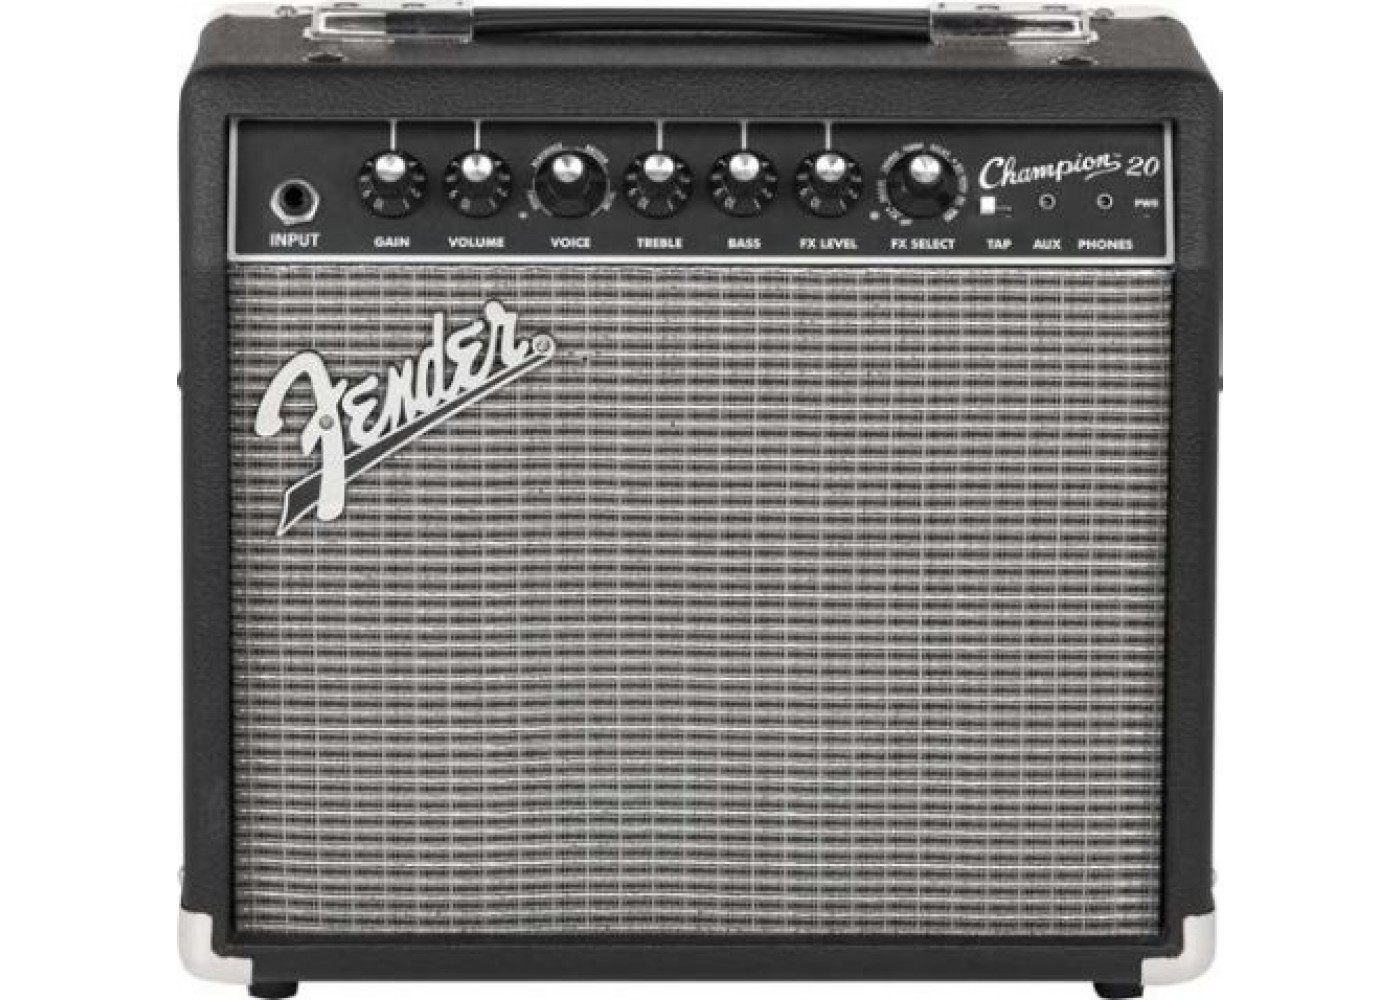 fender champion 20 20w guitar combo amp with effects. Black Bedroom Furniture Sets. Home Design Ideas